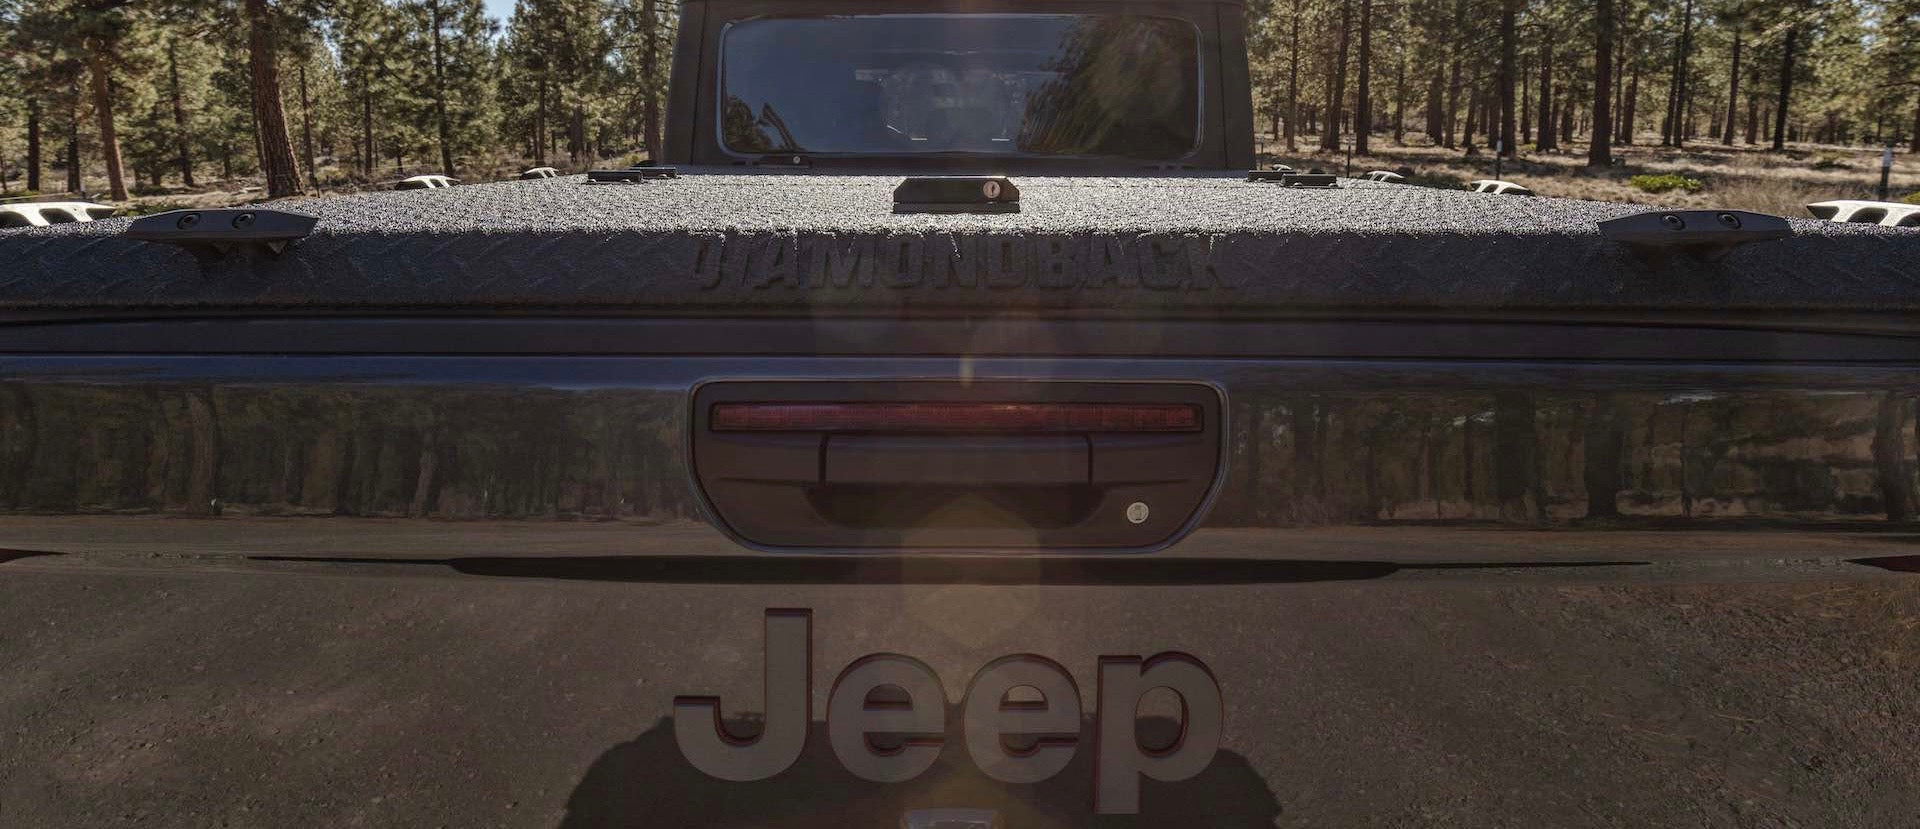 A man closes the door of his Jeep Gladiator that sports a DiamondBack HD truck cover